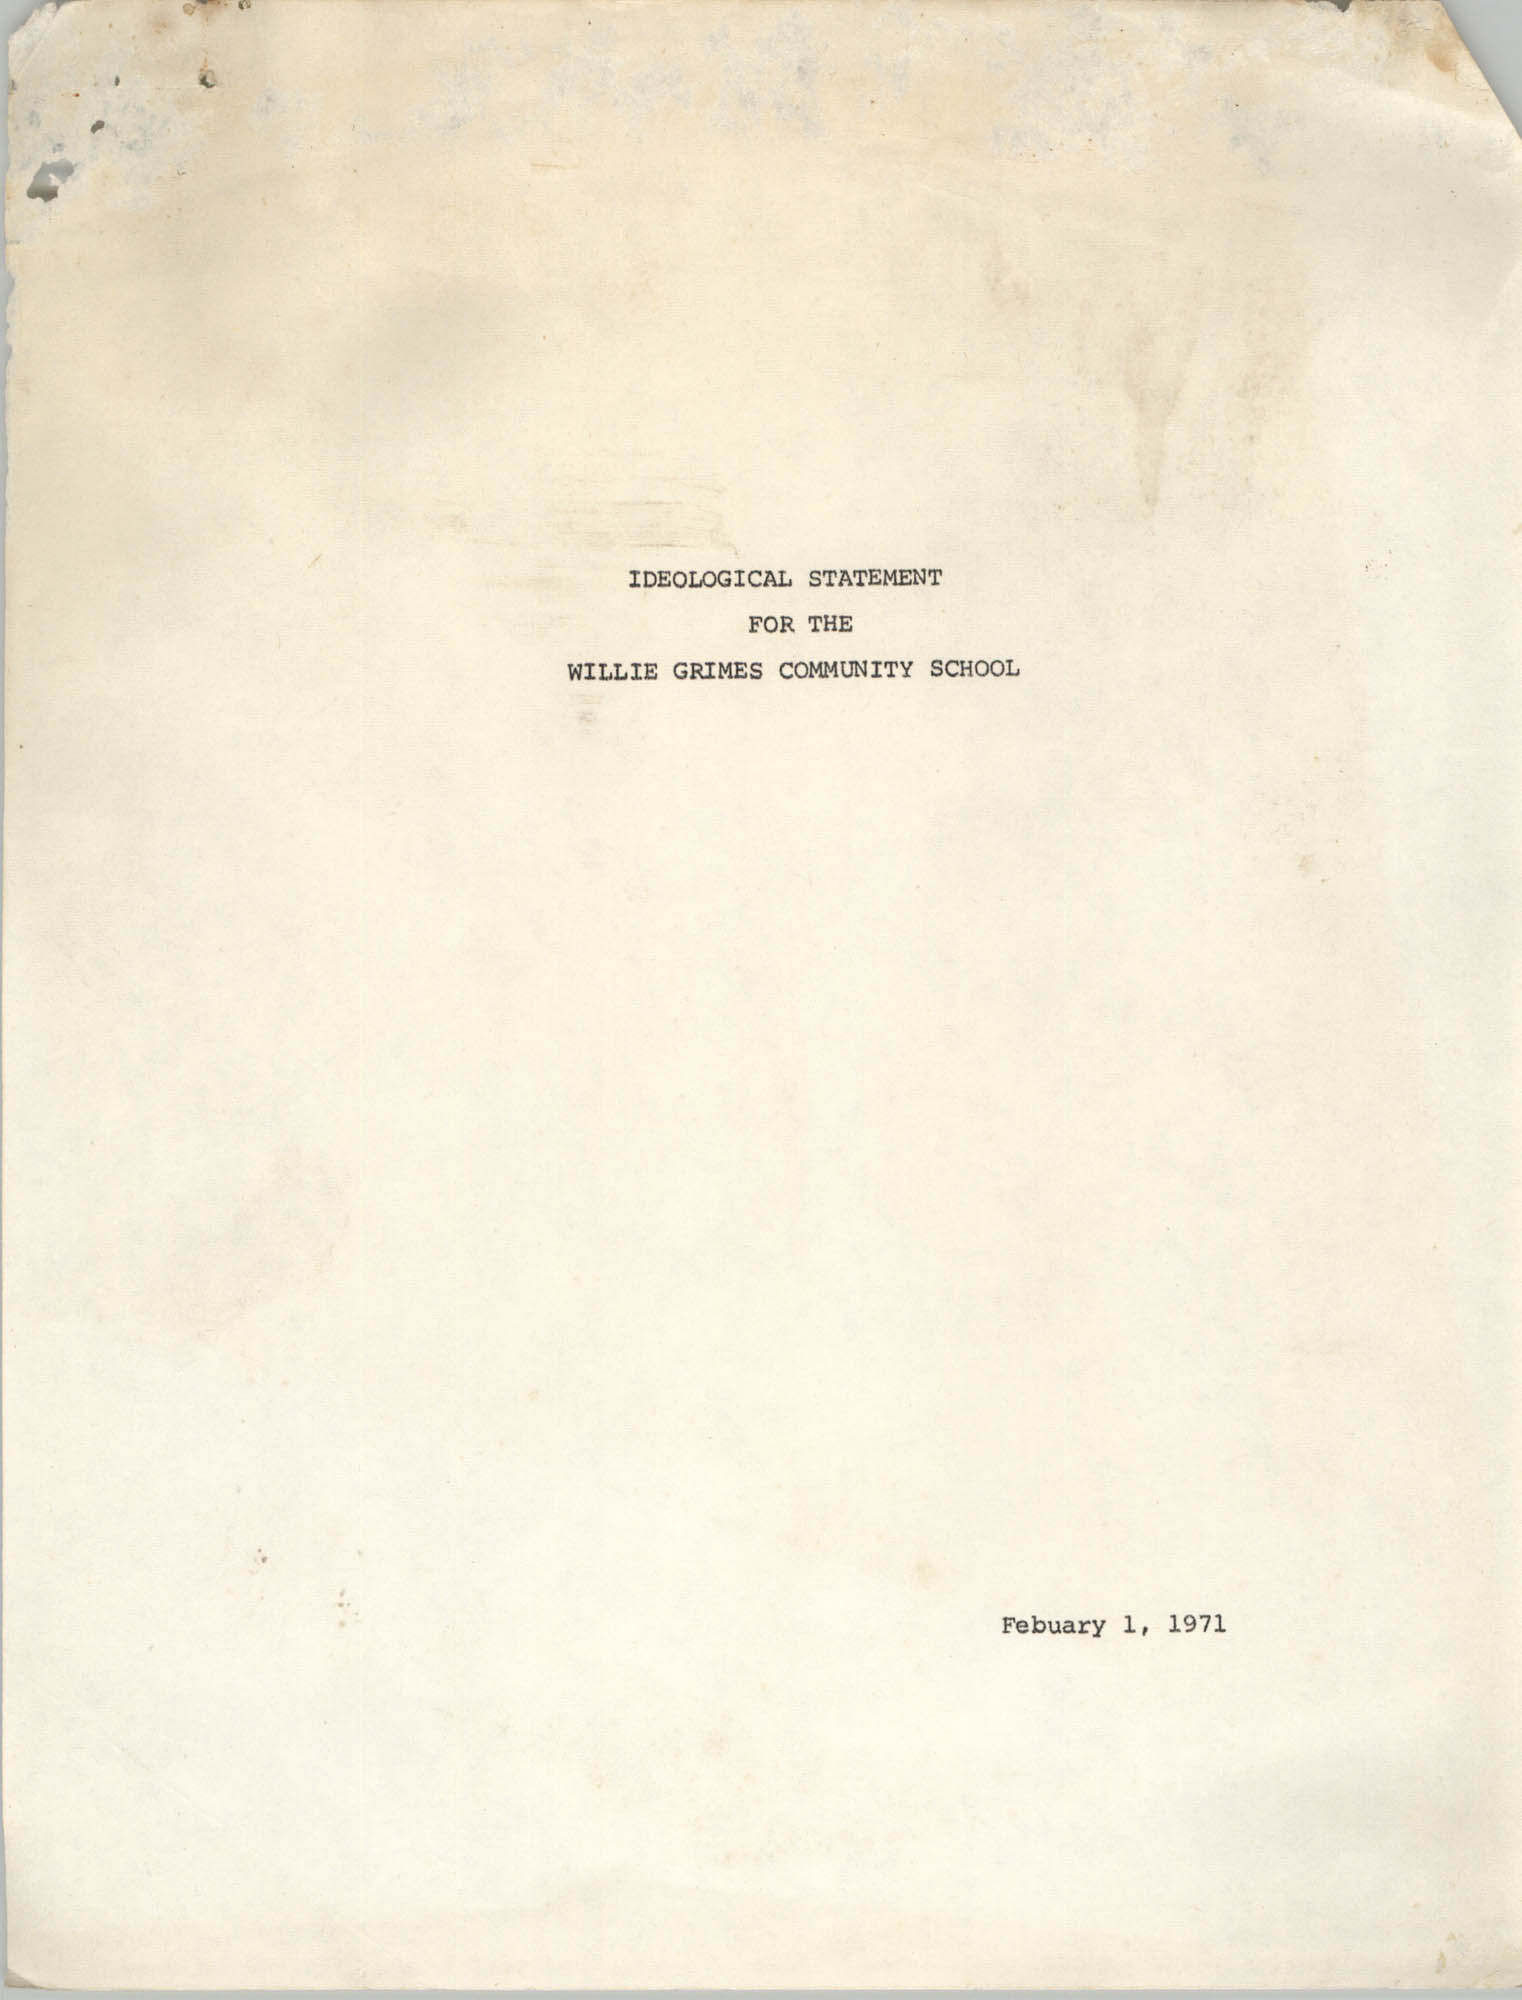 Ideological Statement for the Willie Grimes Community School, February 1, 1971